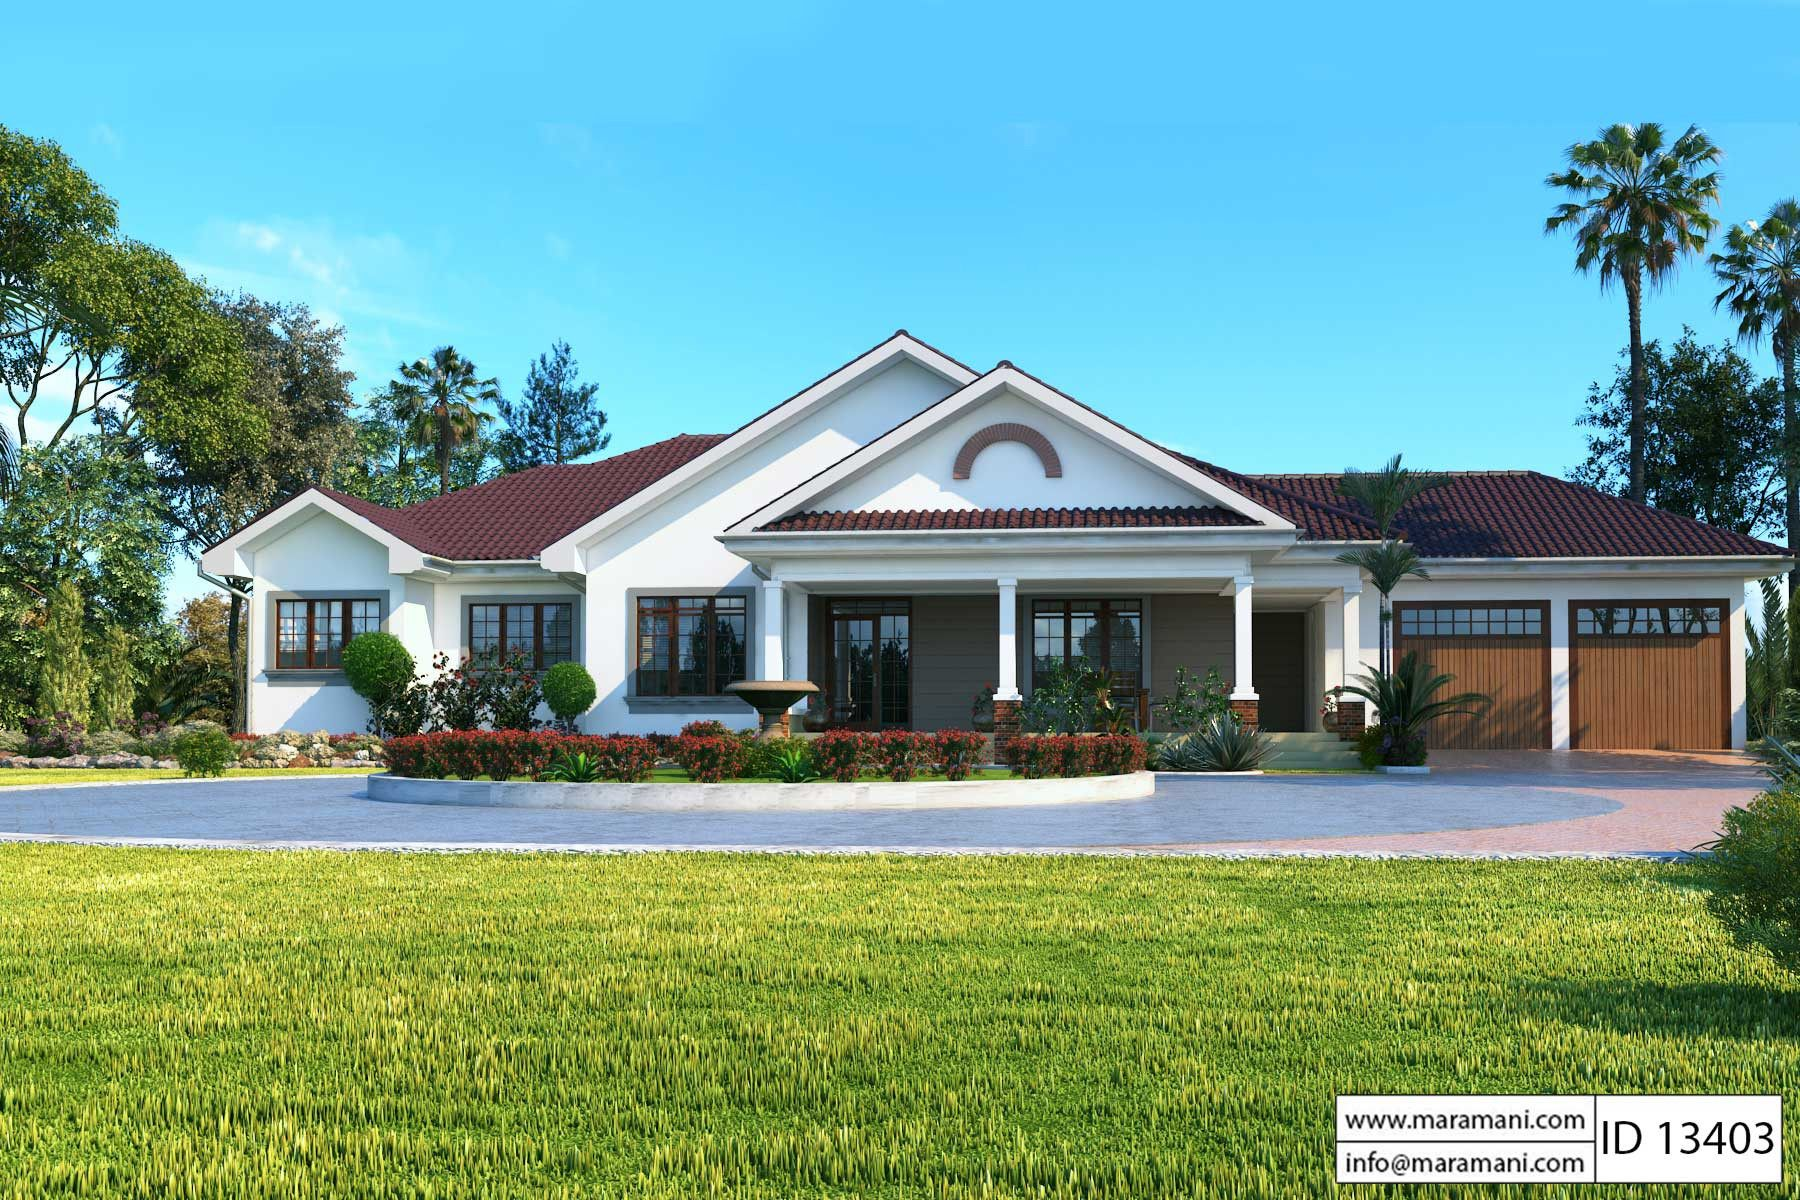 3 Bedroom bungalow with garage - ID 13403 - House Plans by Maramani